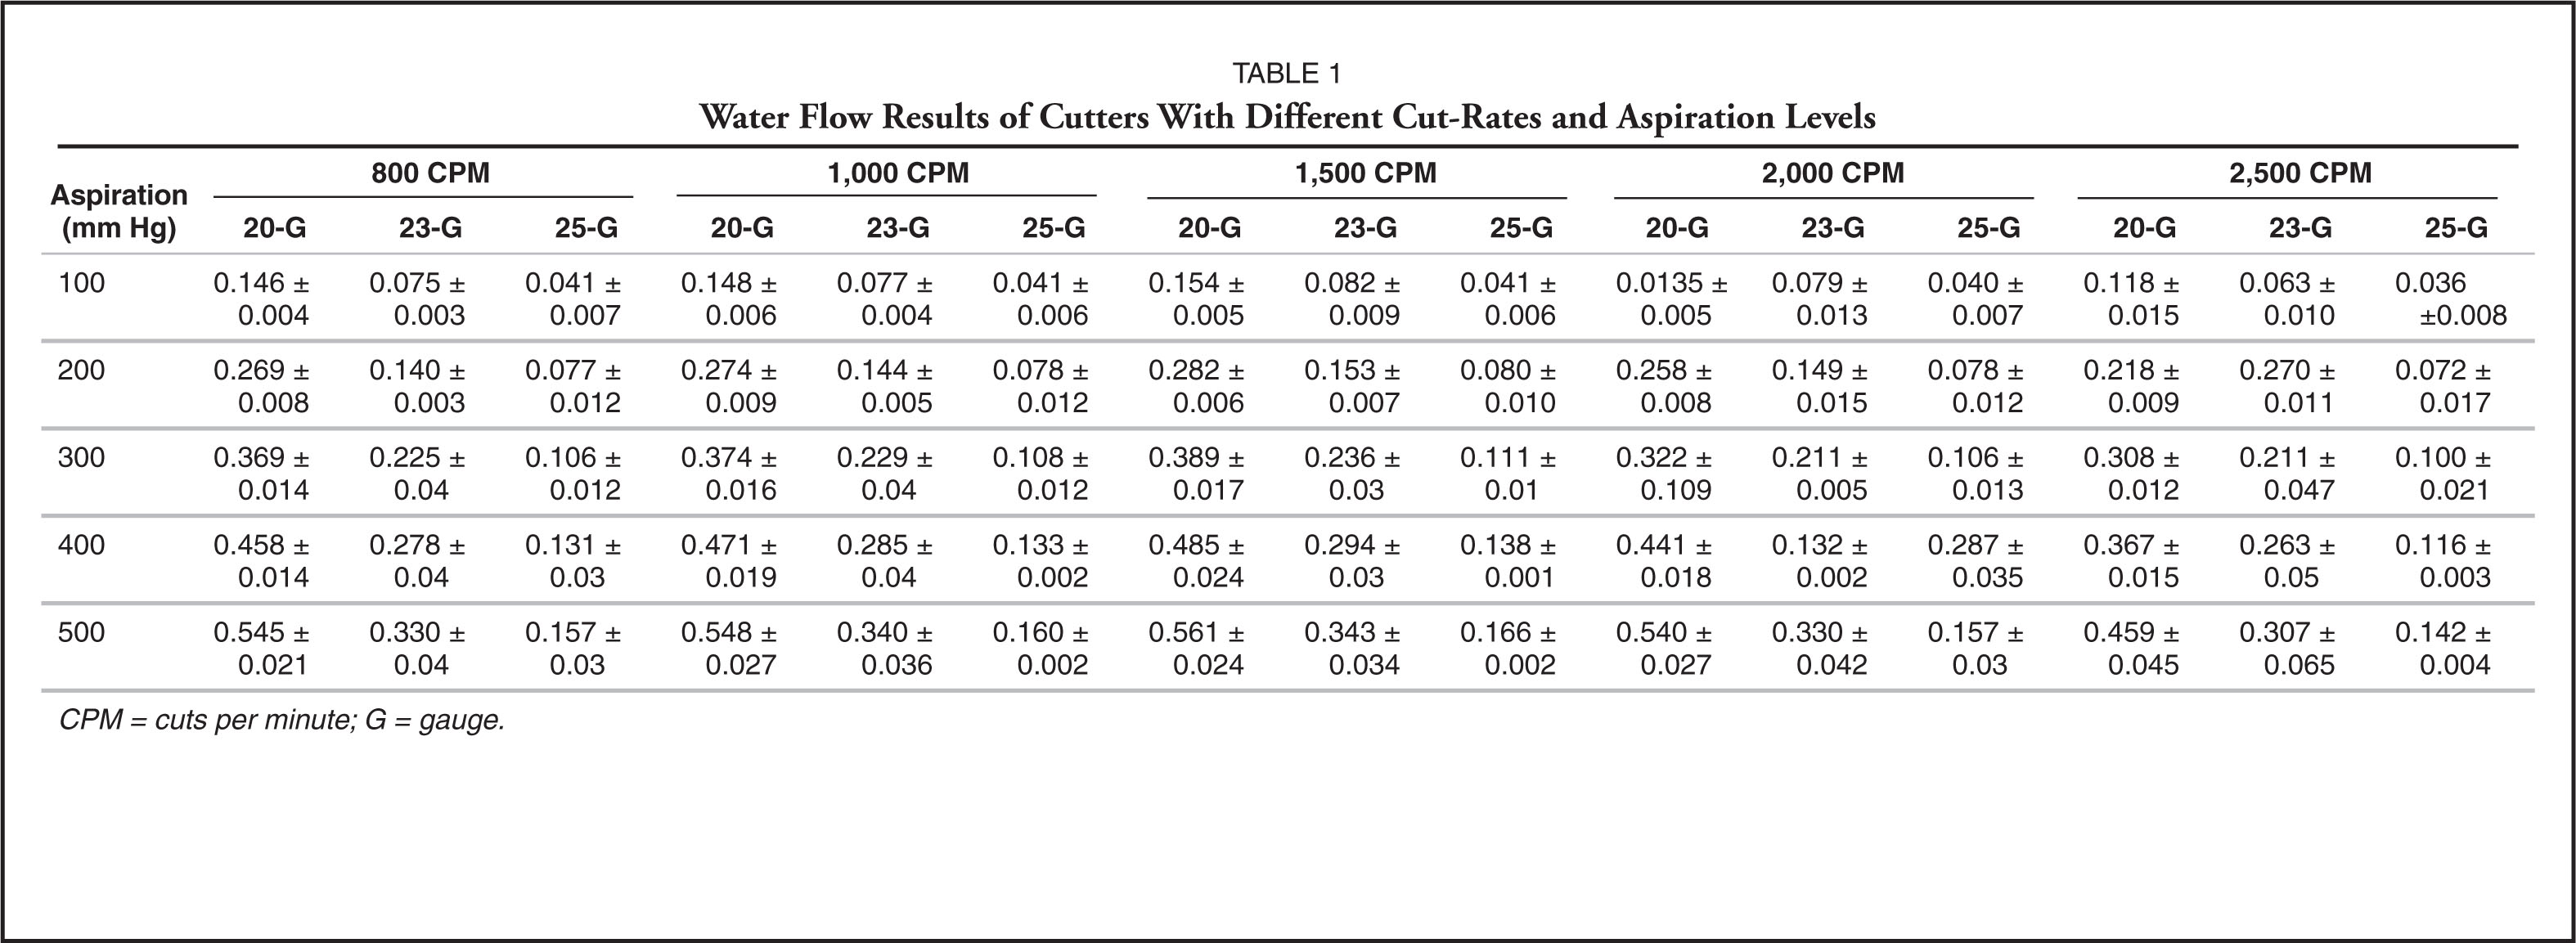 Water Flow Results of Cutters with Different Cut-Rates and Aspiration Levels